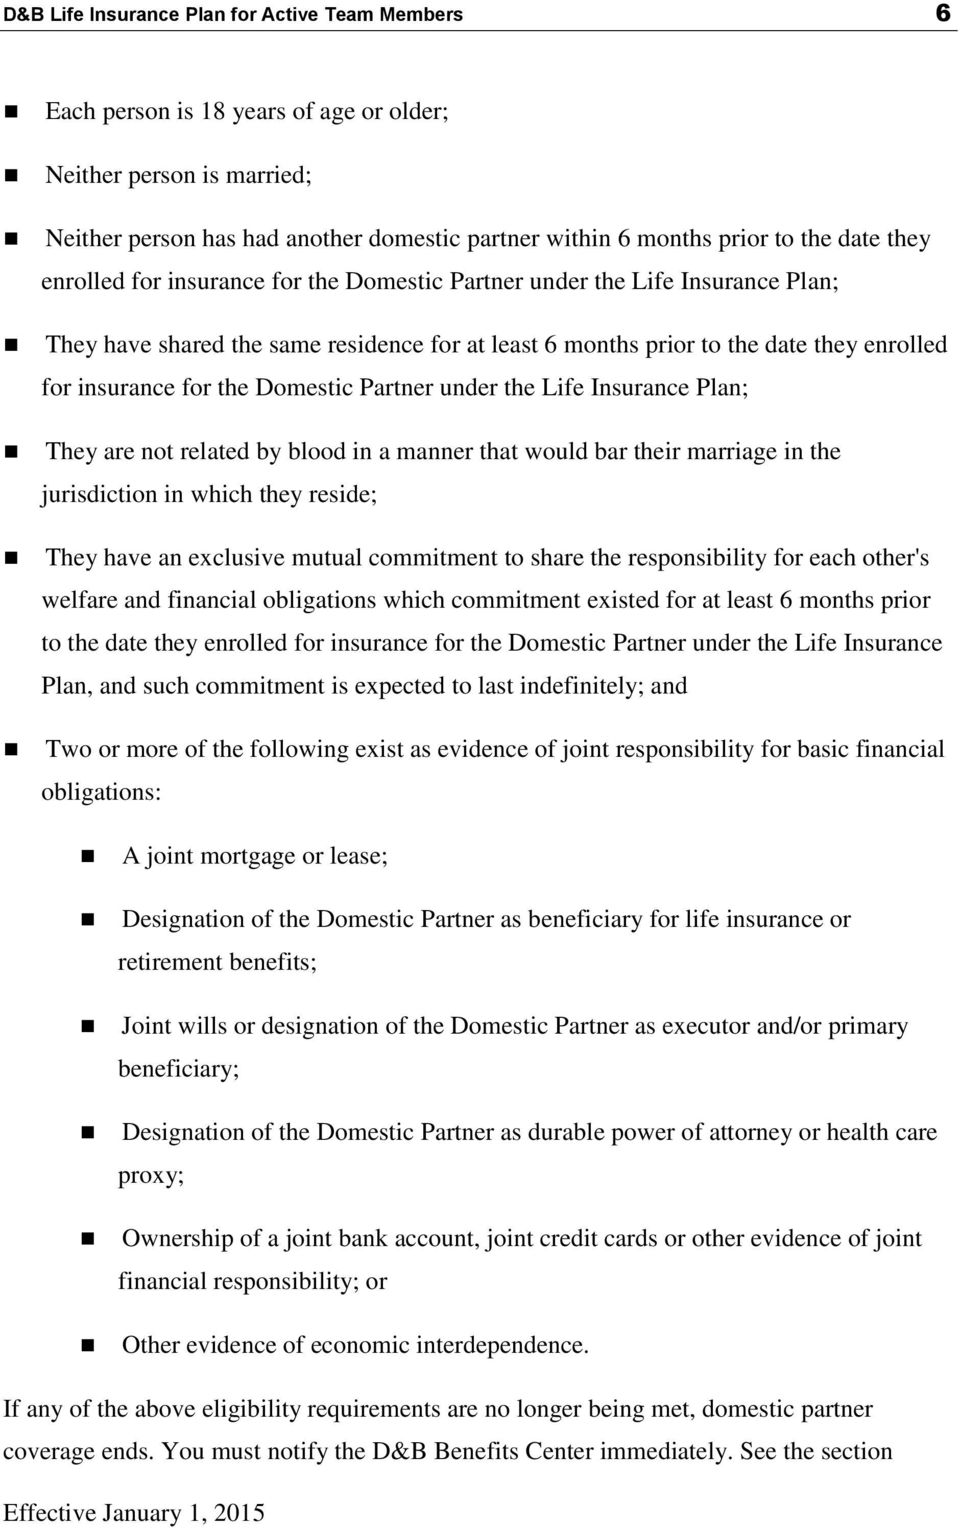 Domestic Partner under the Life Insurance Plan; They are not related by blood in a manner that would bar their marriage in the jurisdiction in which they reside; They have an exclusive mutual